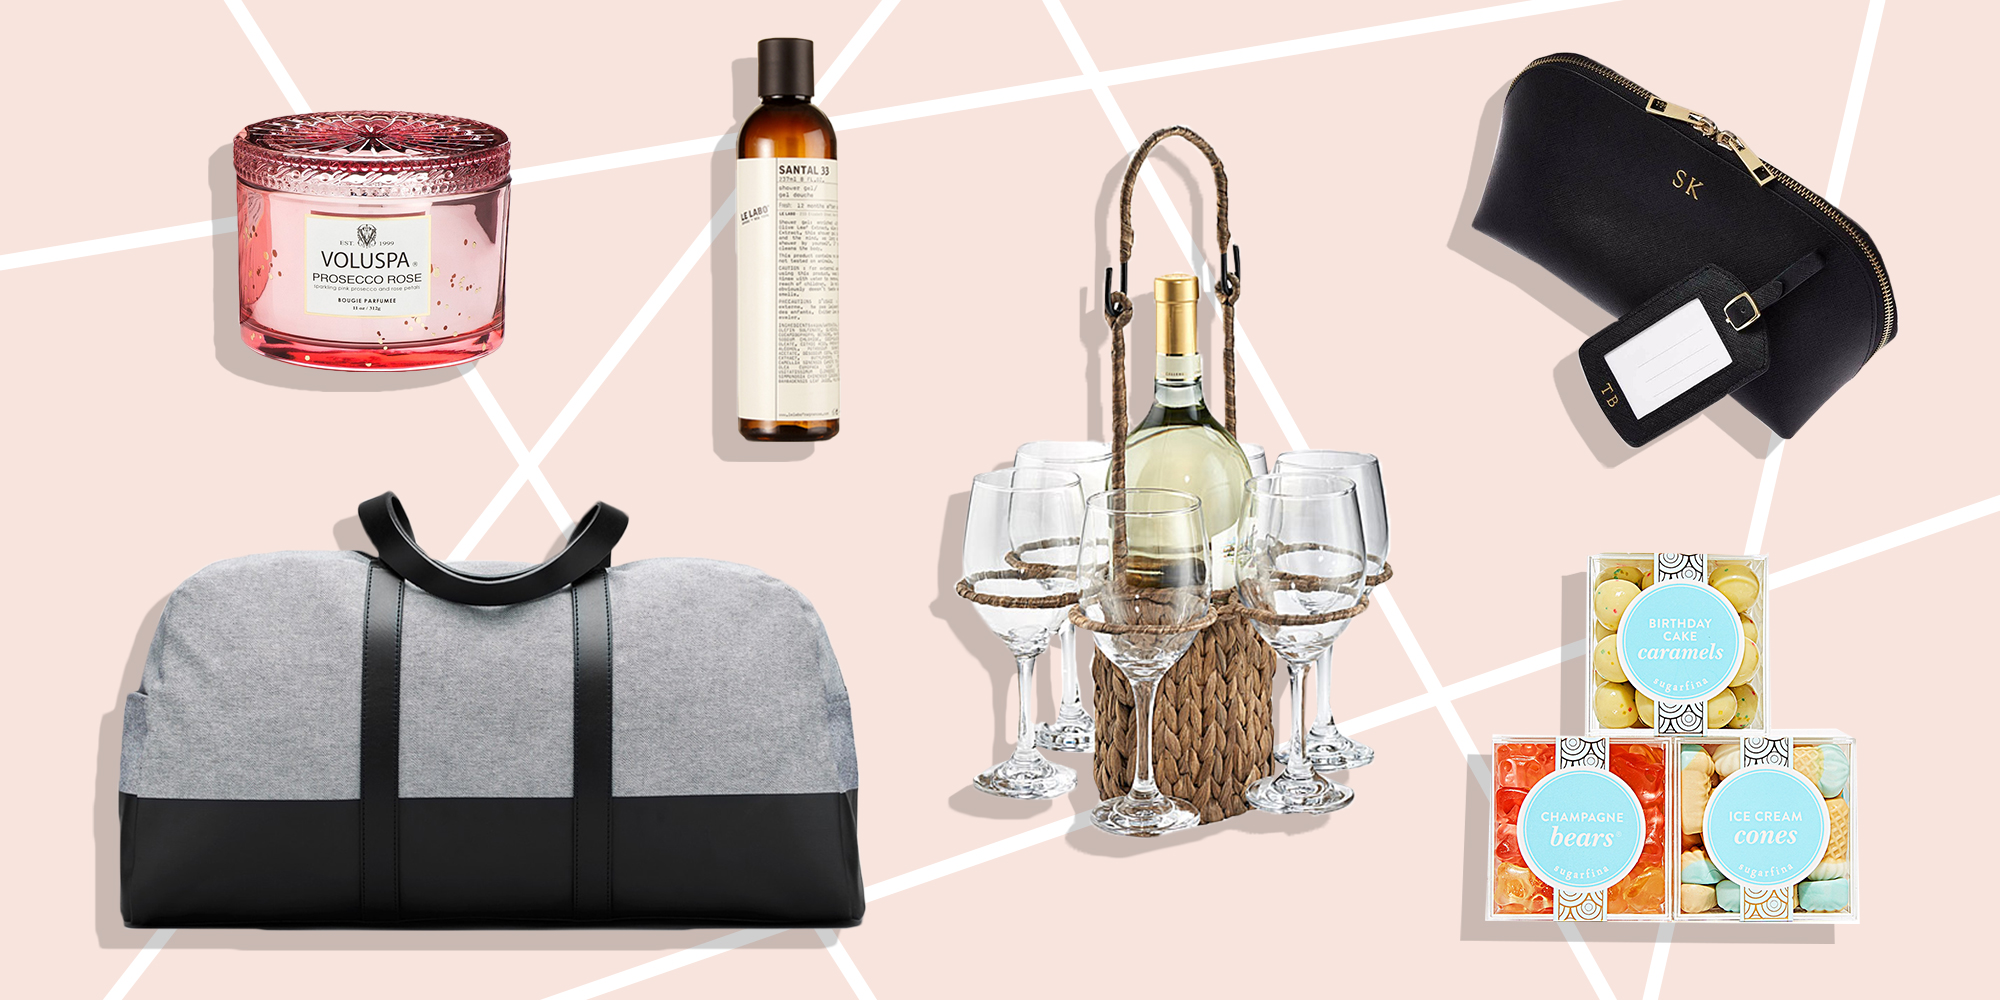 15 Best 30th Birthday Gifts For Women In 2018 Chic Gift